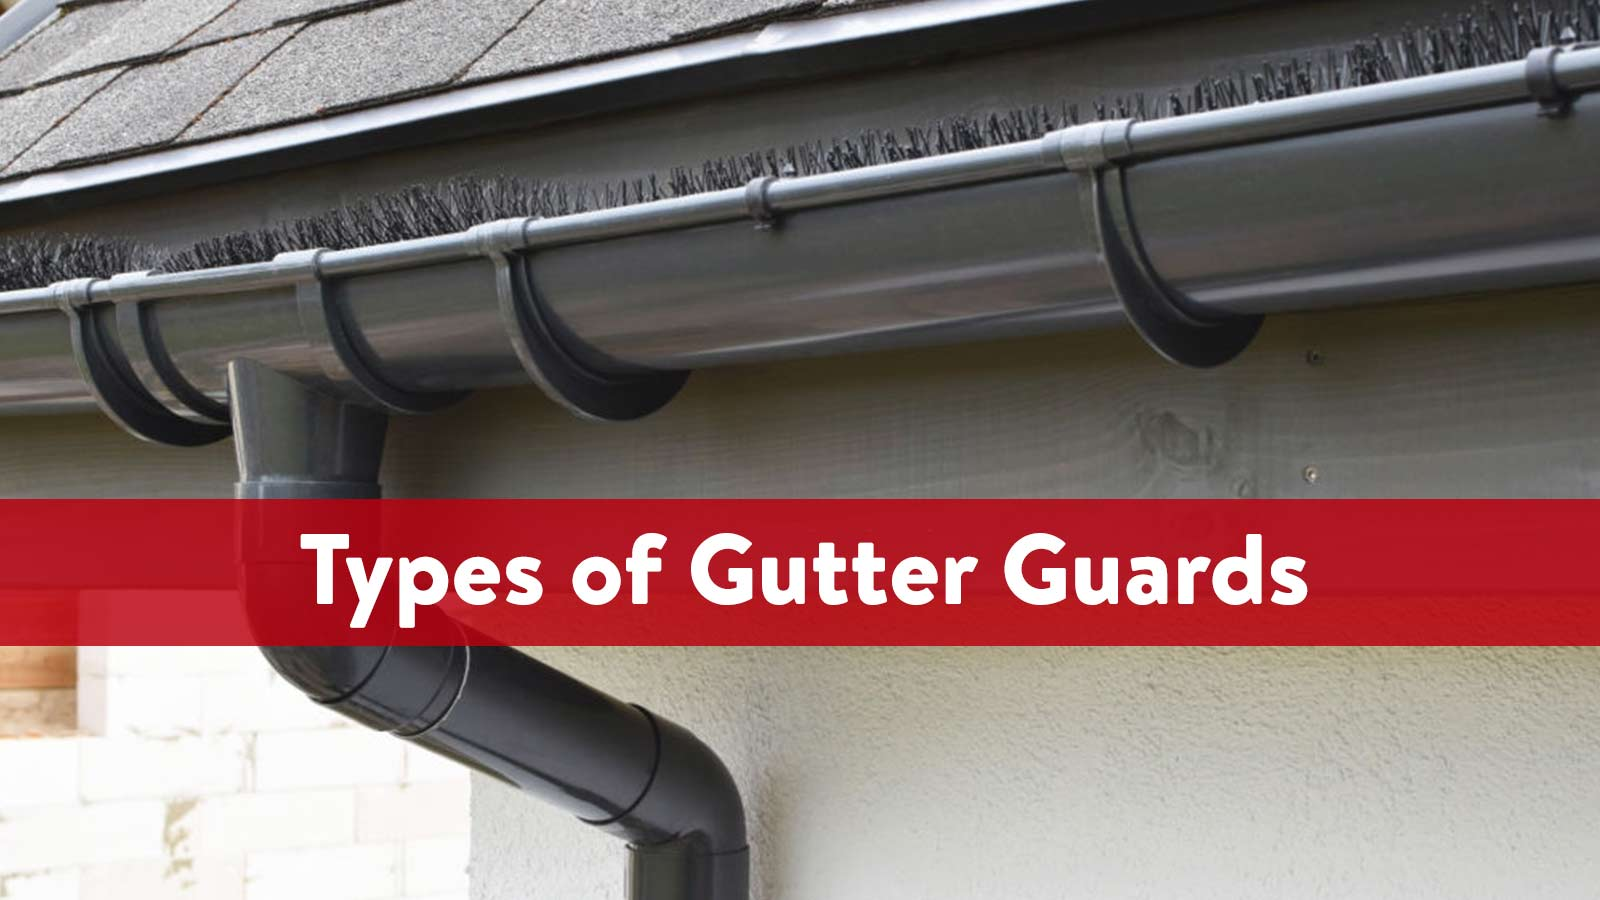 Types of Gutter Guards